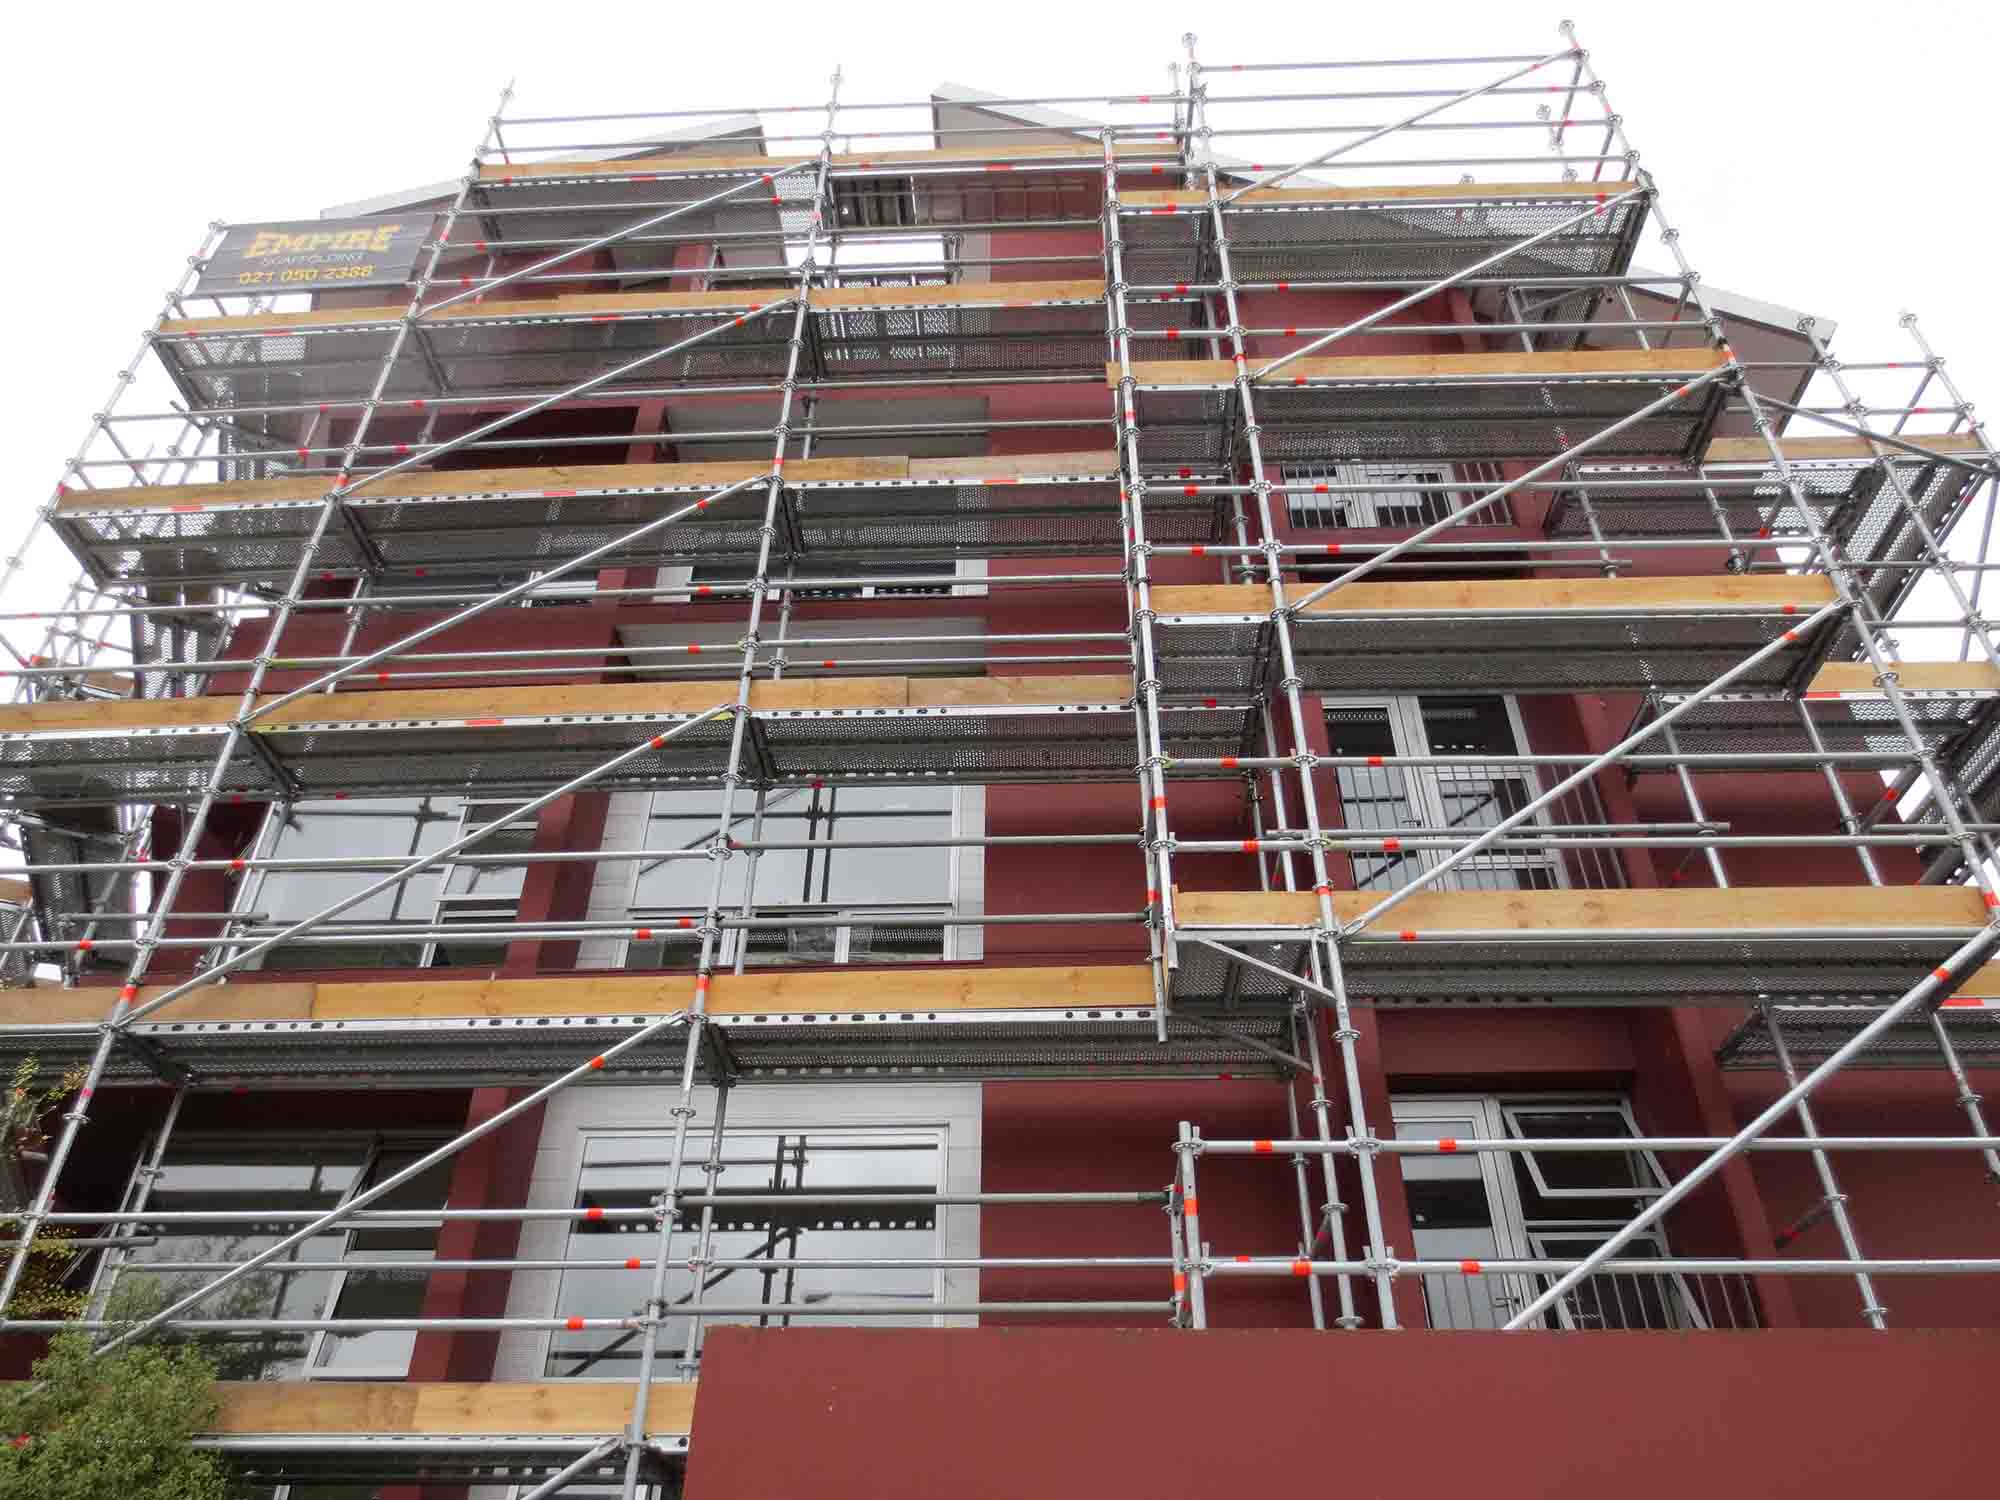 Layher Allround components were used on this Central City Christchurch project